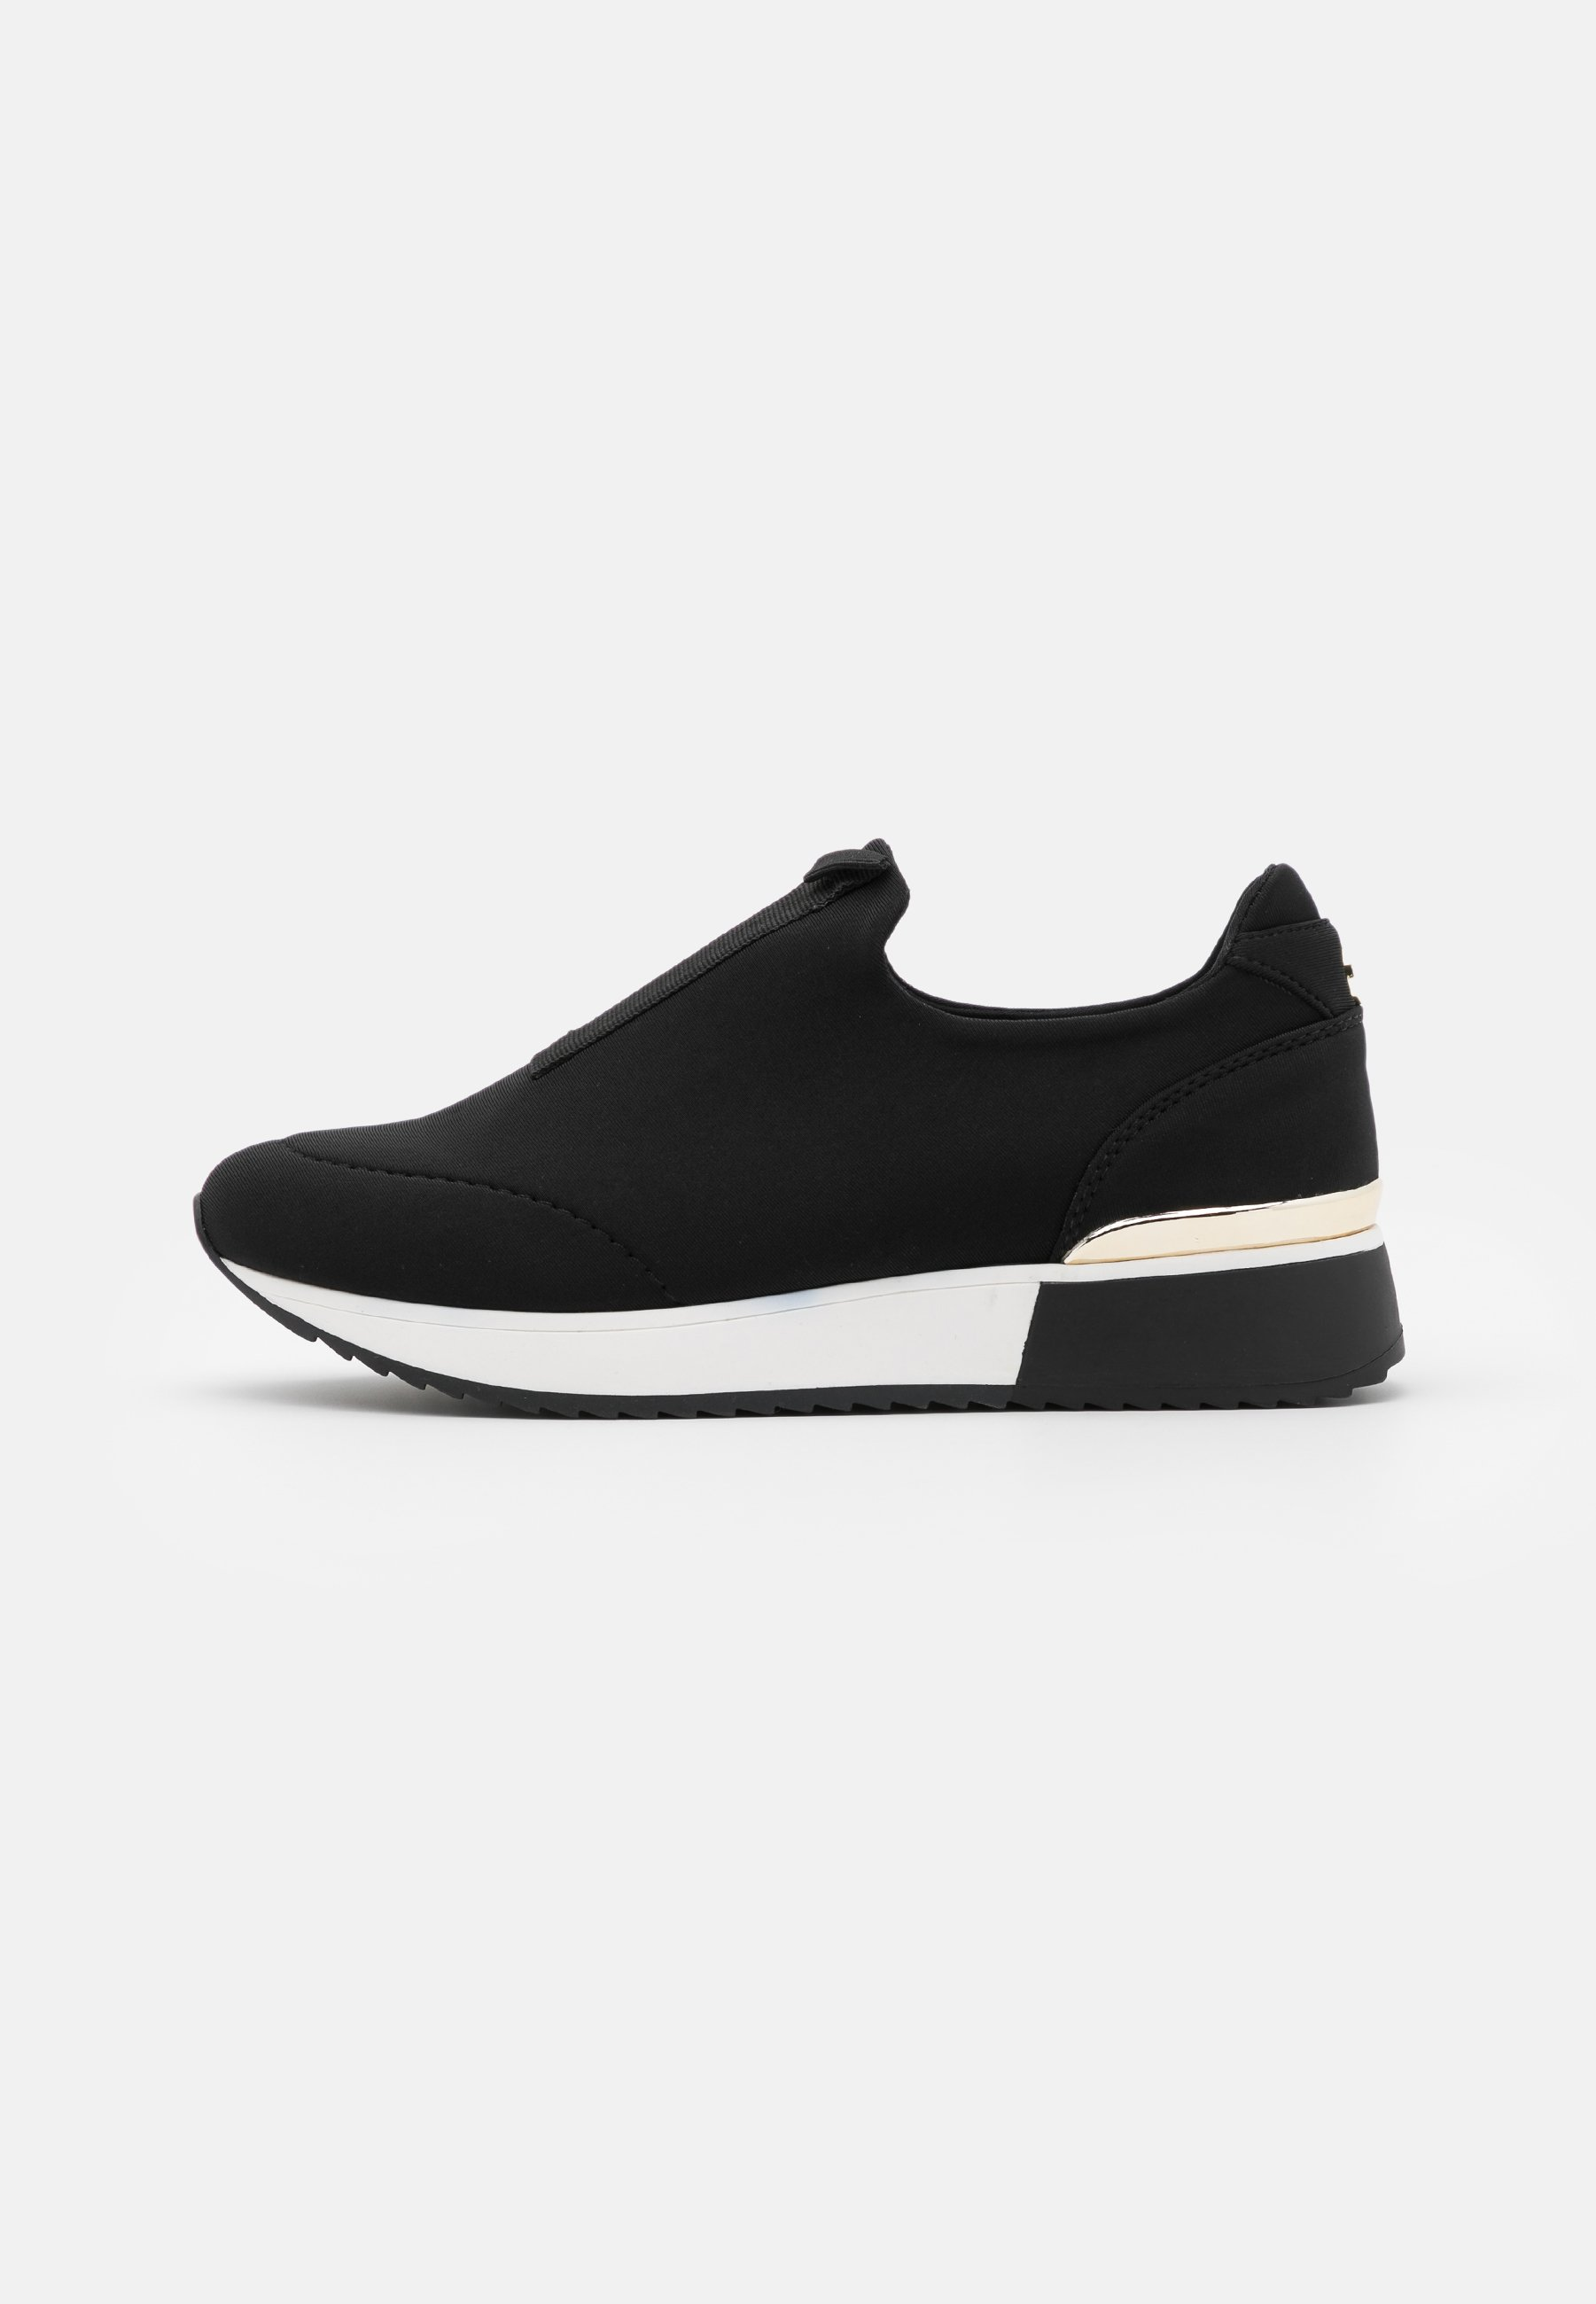 River Island Ladies Trainers from UK Size 4 to UK size 7 Black And White